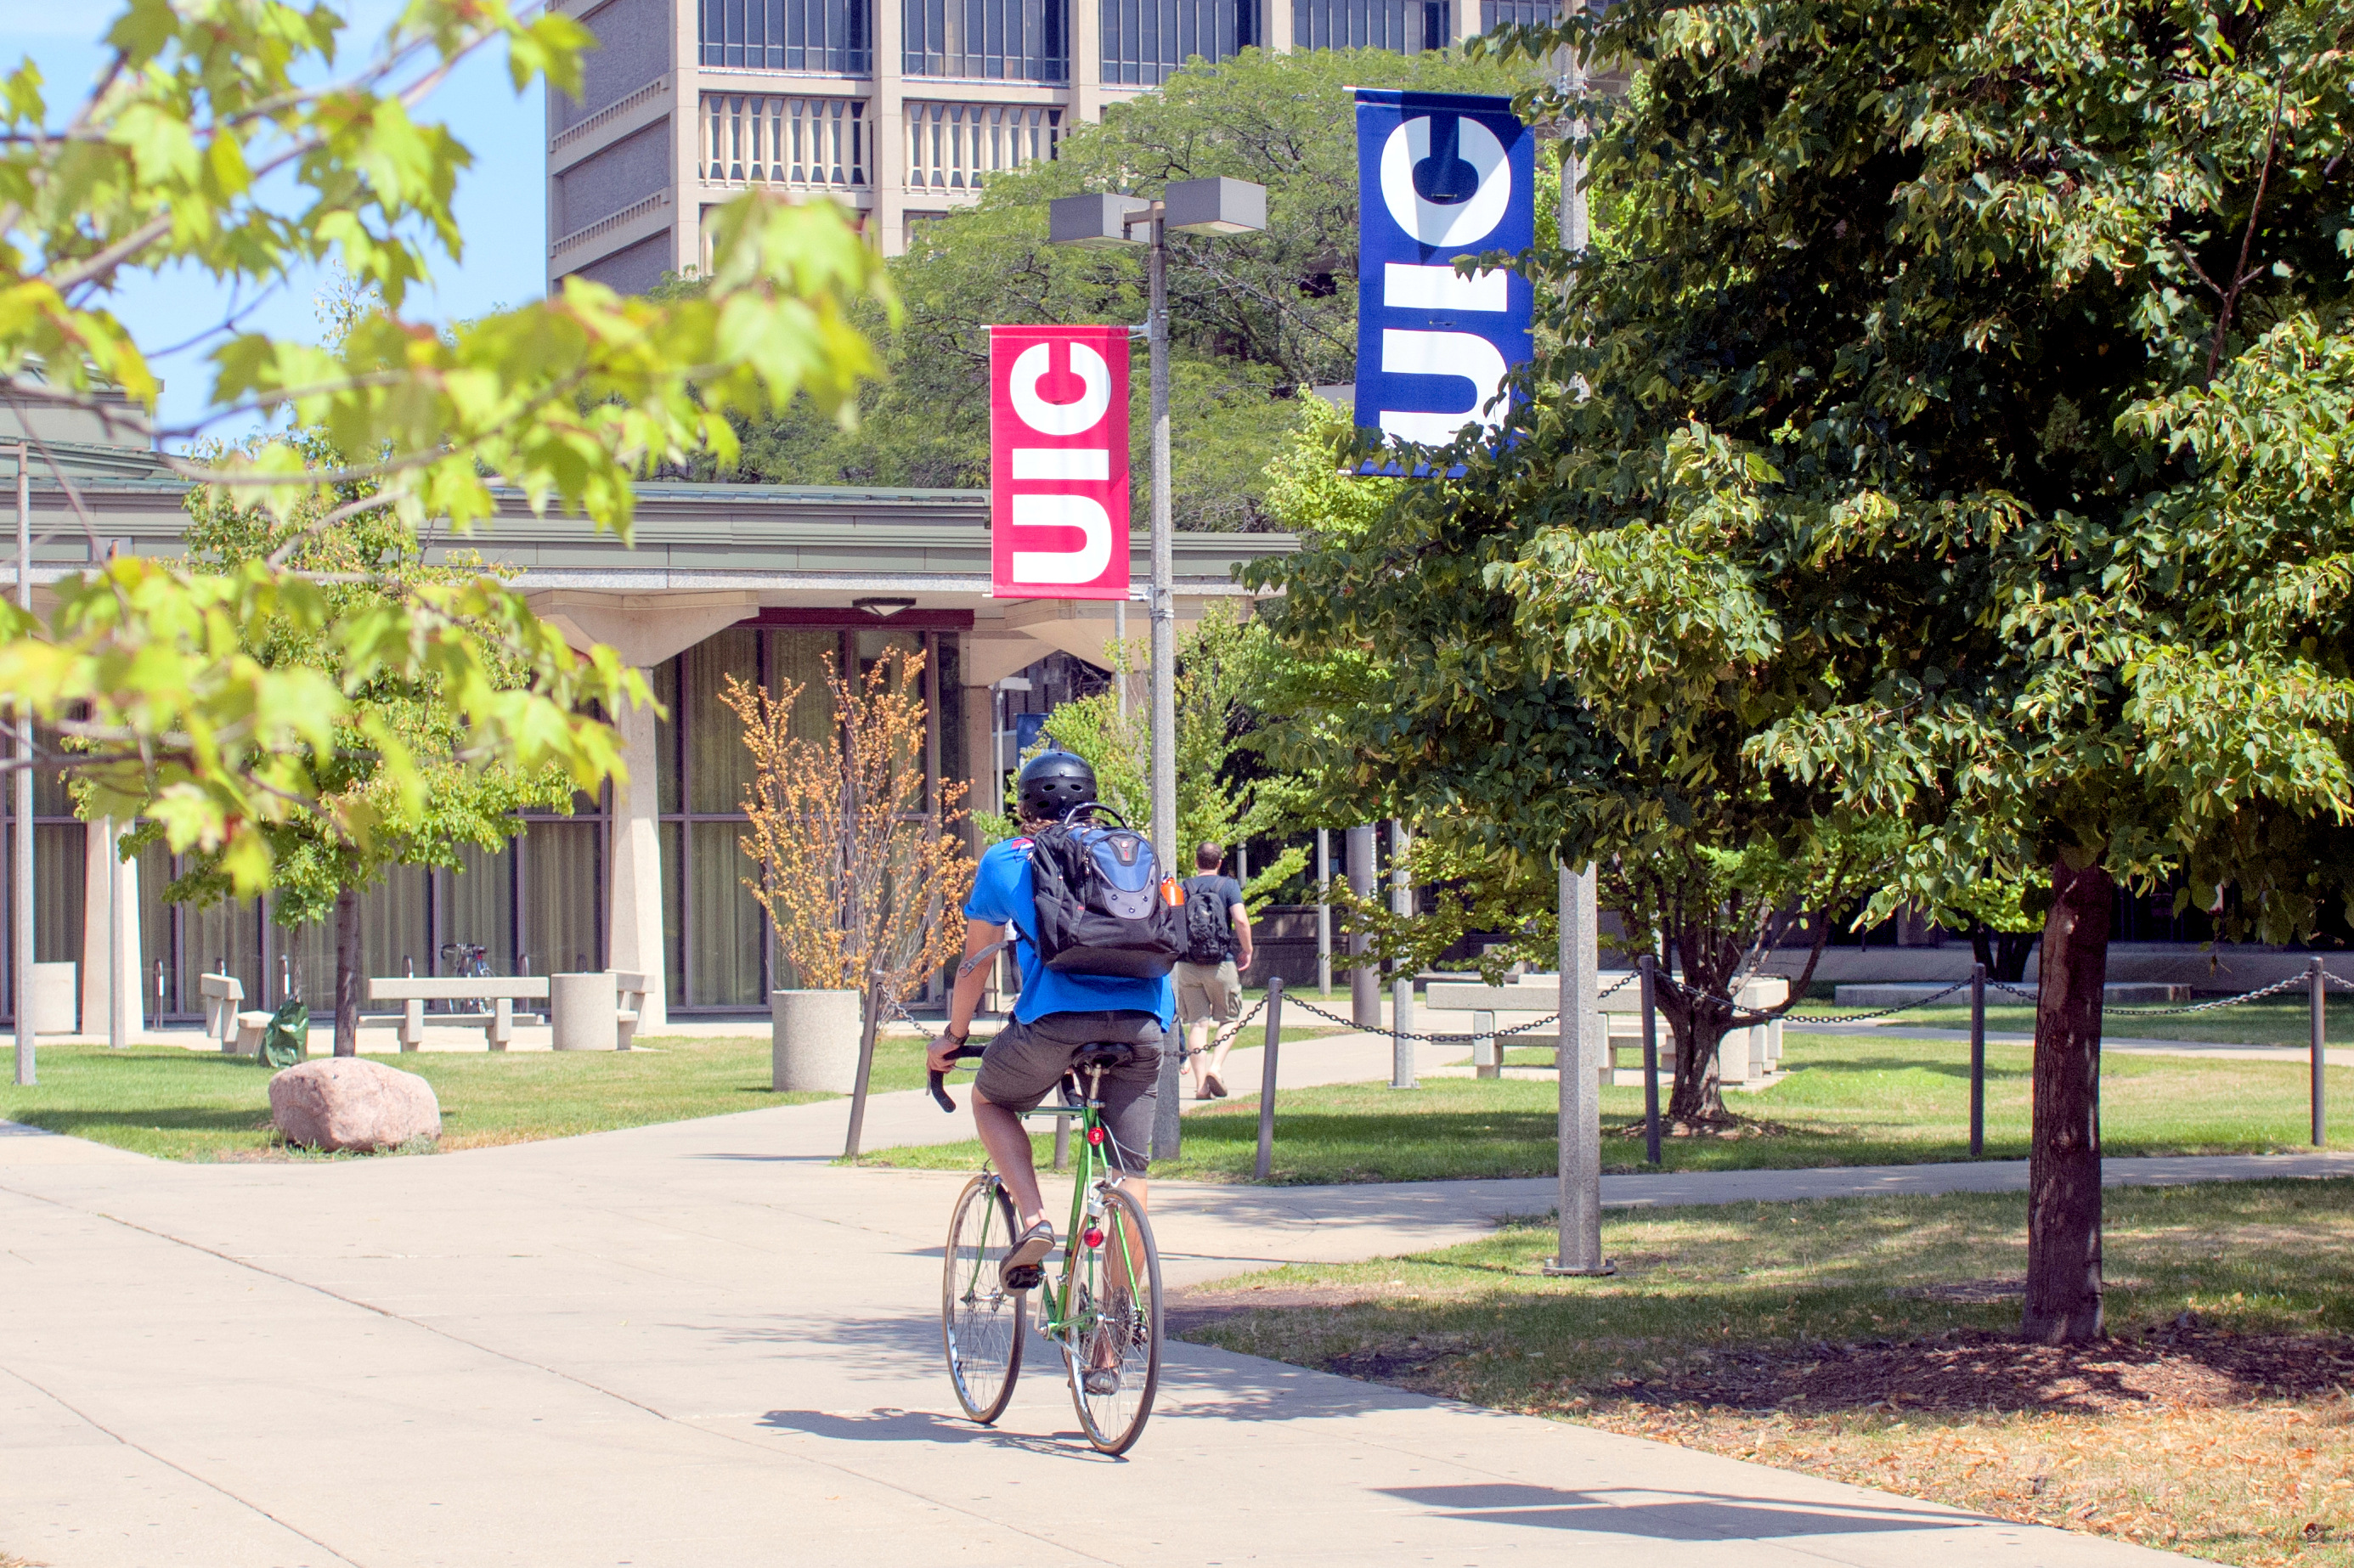 Uic Summer 2020.Summer Session